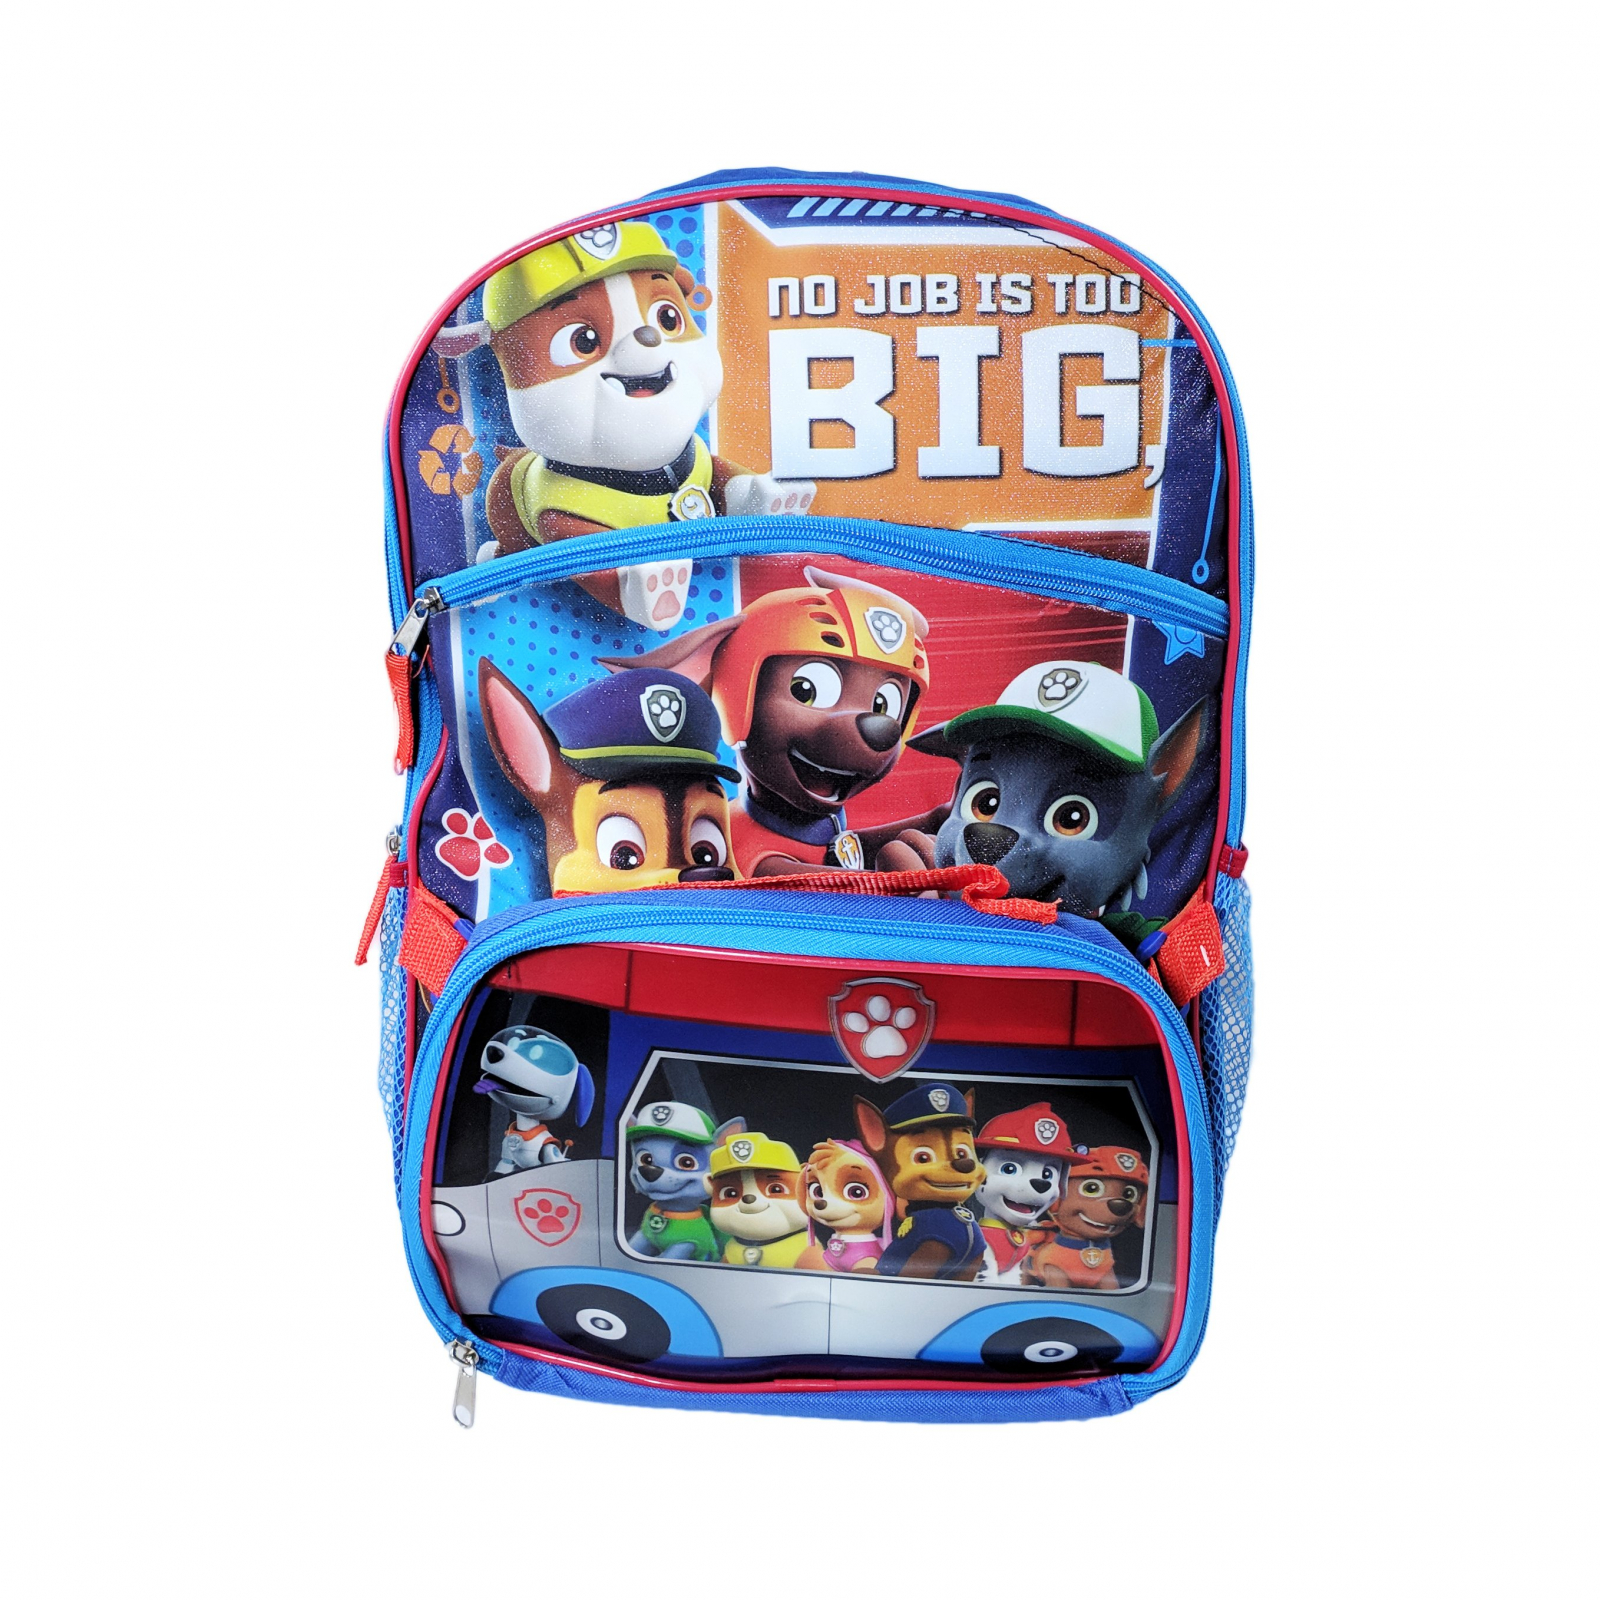 Nickelodeon Paw Patrol Kids School Backpack with Lunch Bag Set Travel Tote